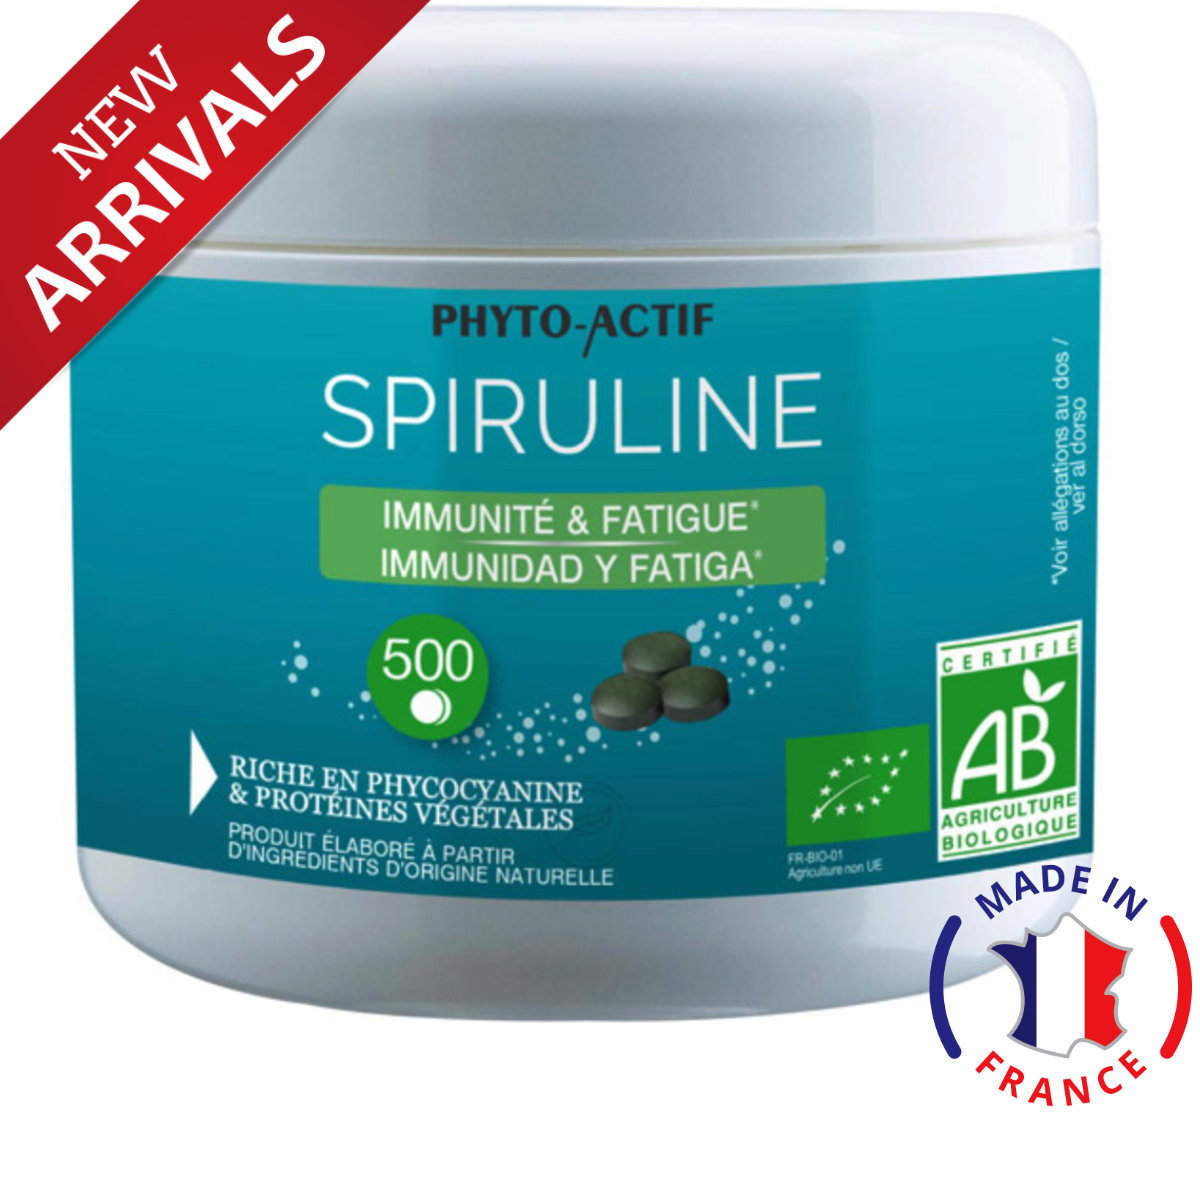 Spirulina Organic Made in France 500 caps